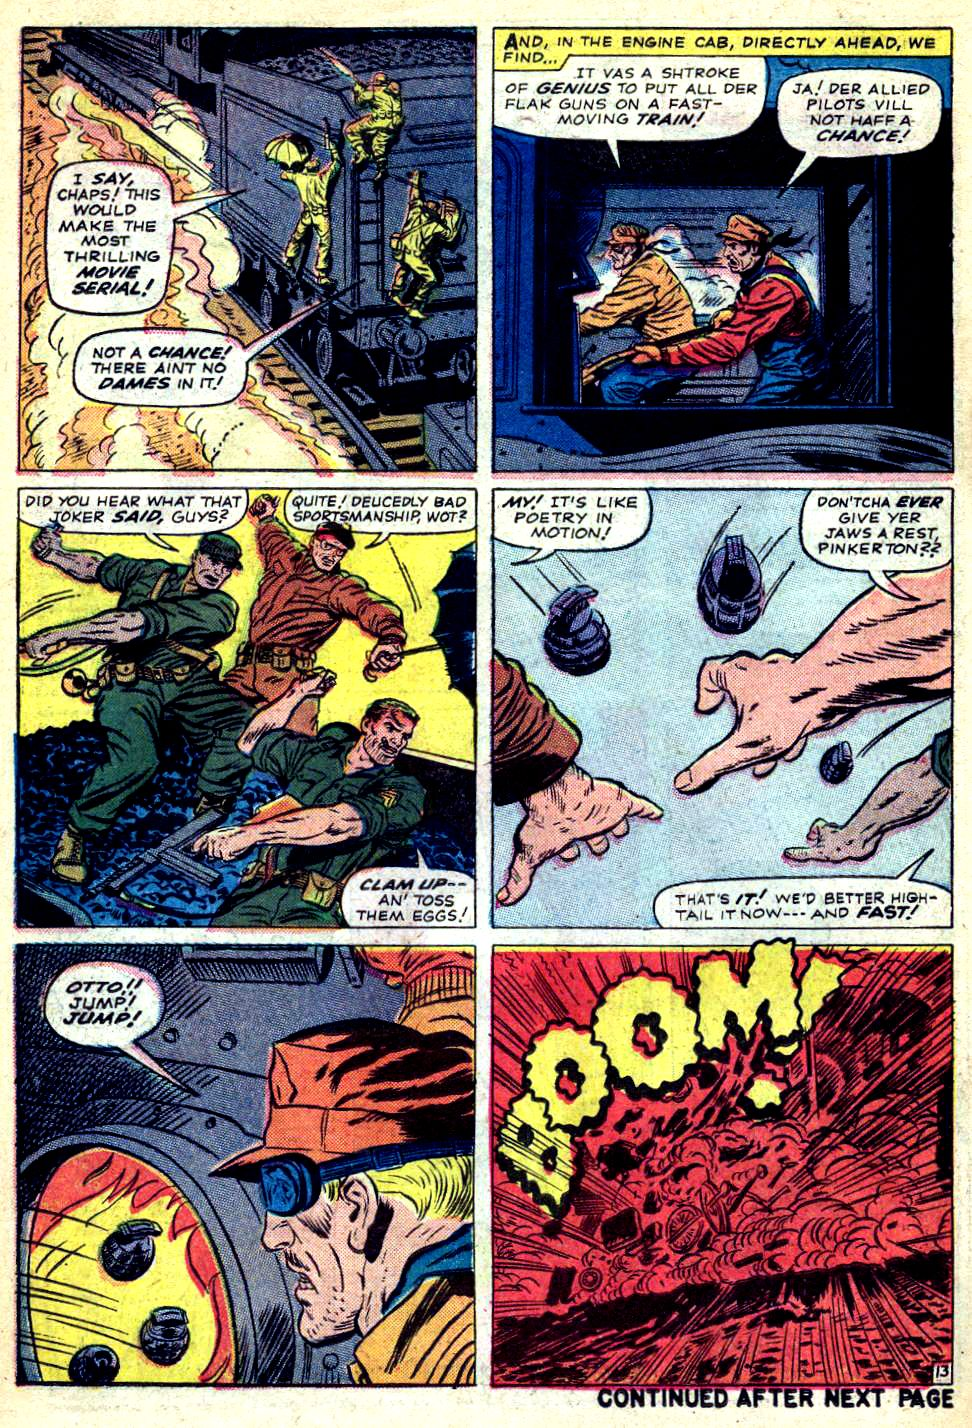 Read online Sgt. Fury comic -  Issue #22 - 18